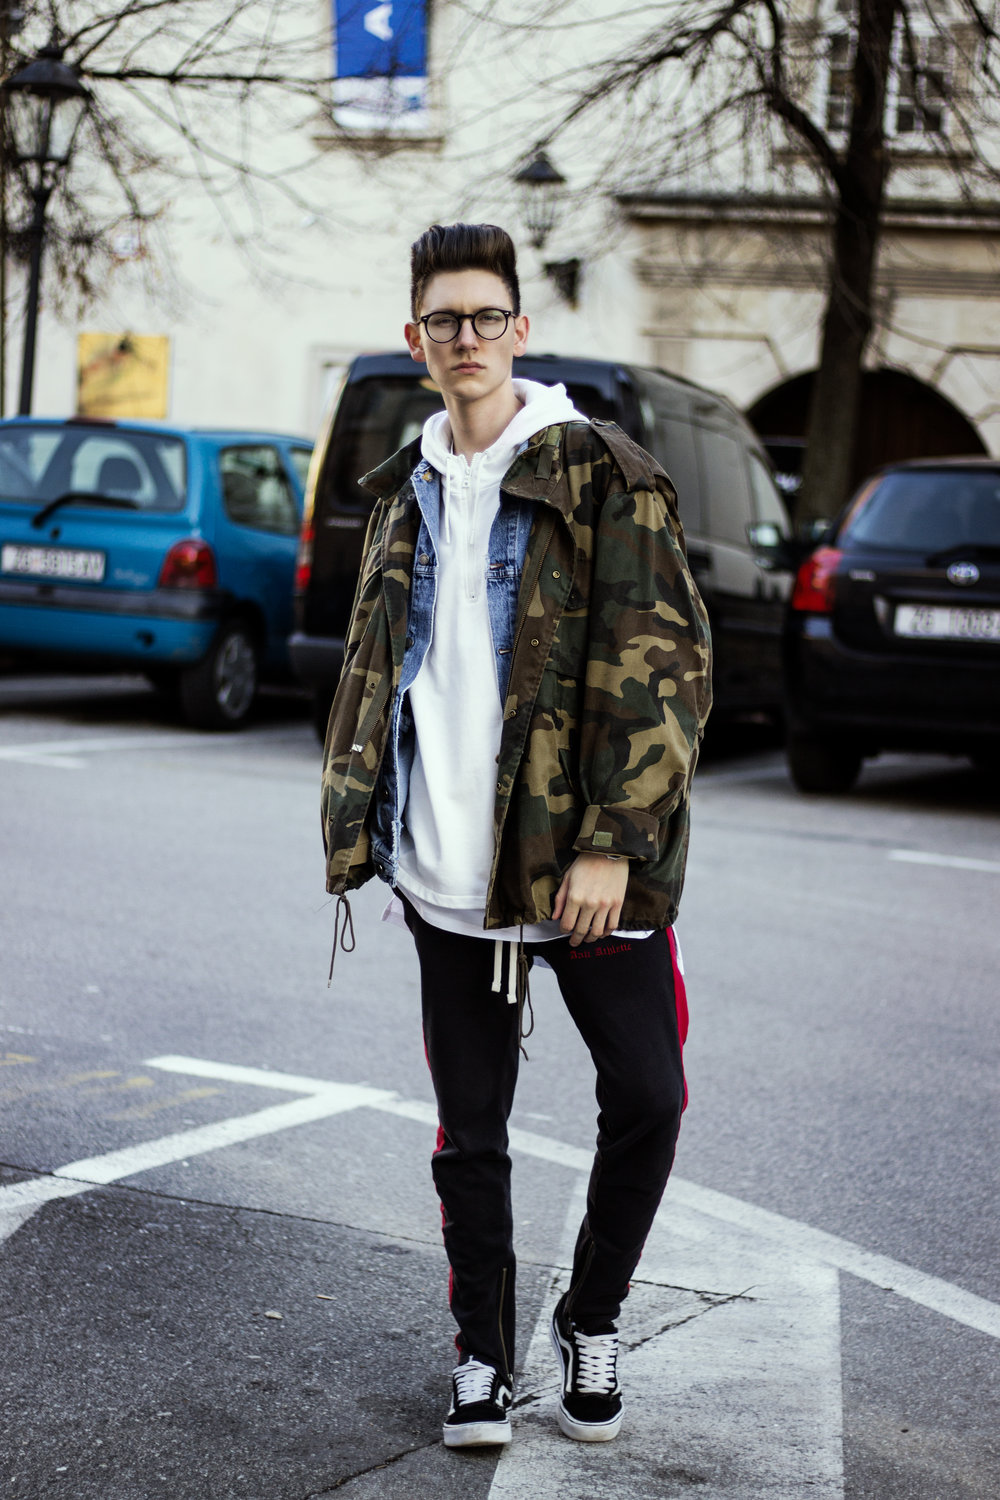 luka-lajic-expensive-reality-hm-mens-fashion-croatia-blogger  (2).jpg